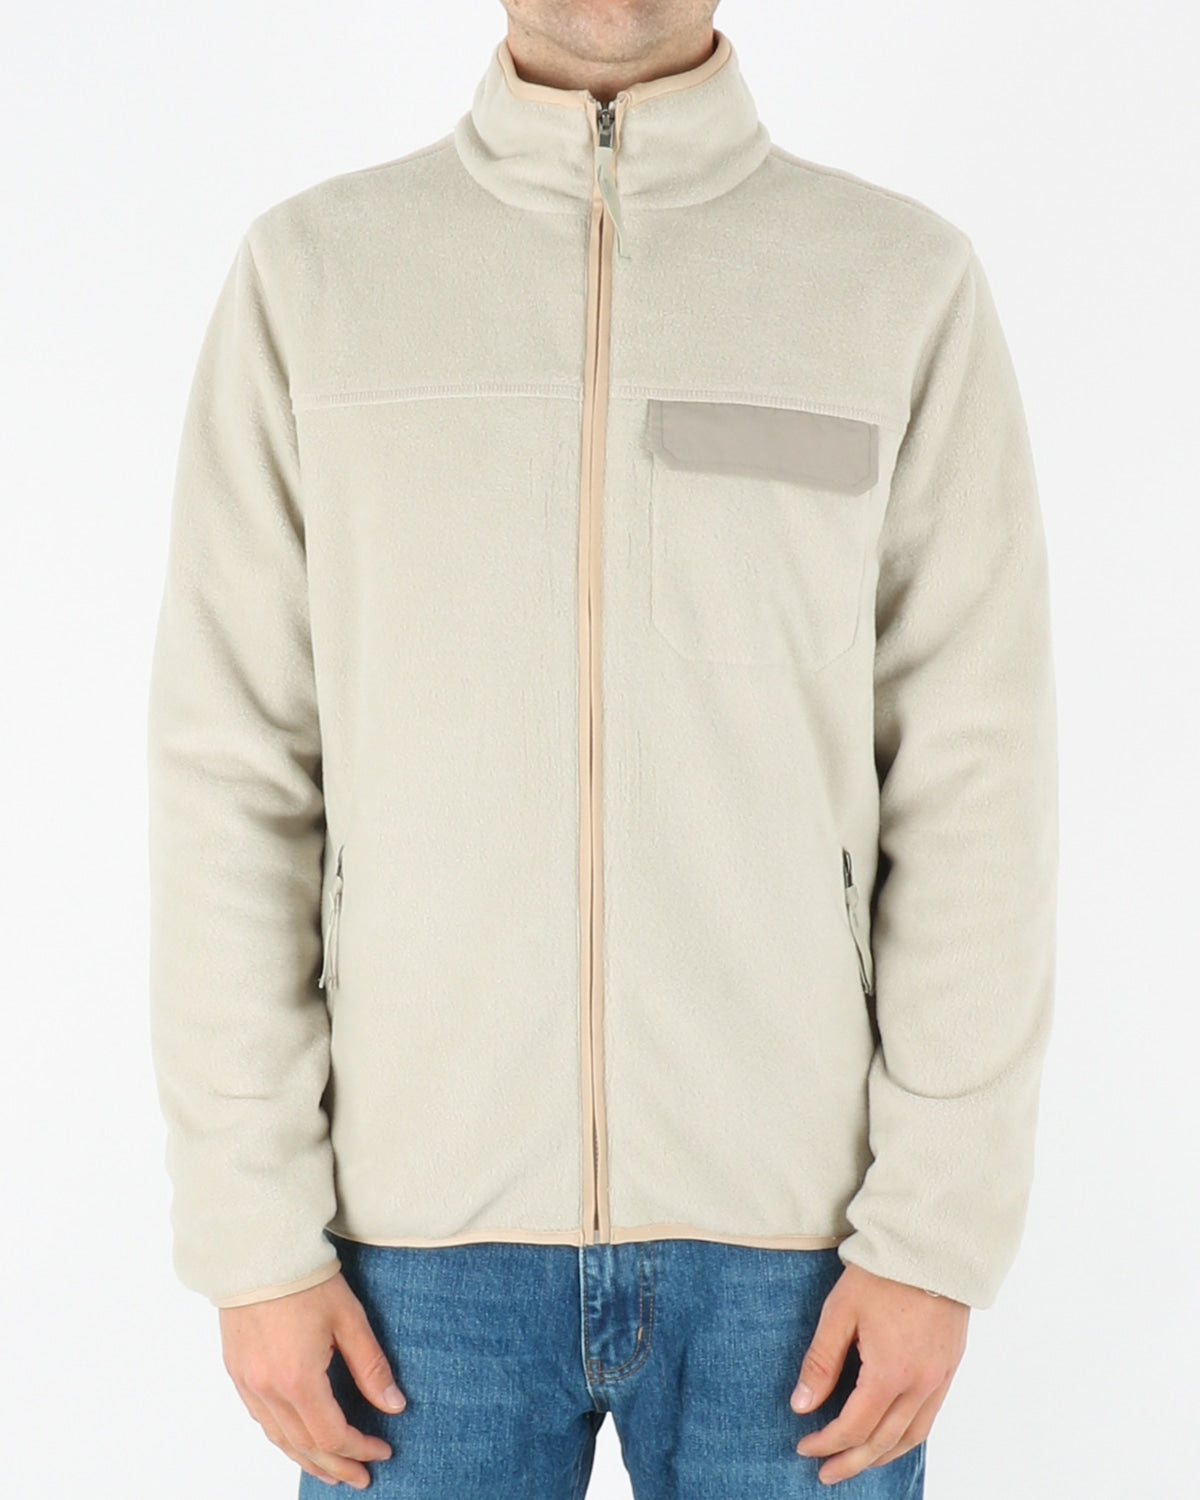 legends_kodiak fleece jacket_ecru_1_3